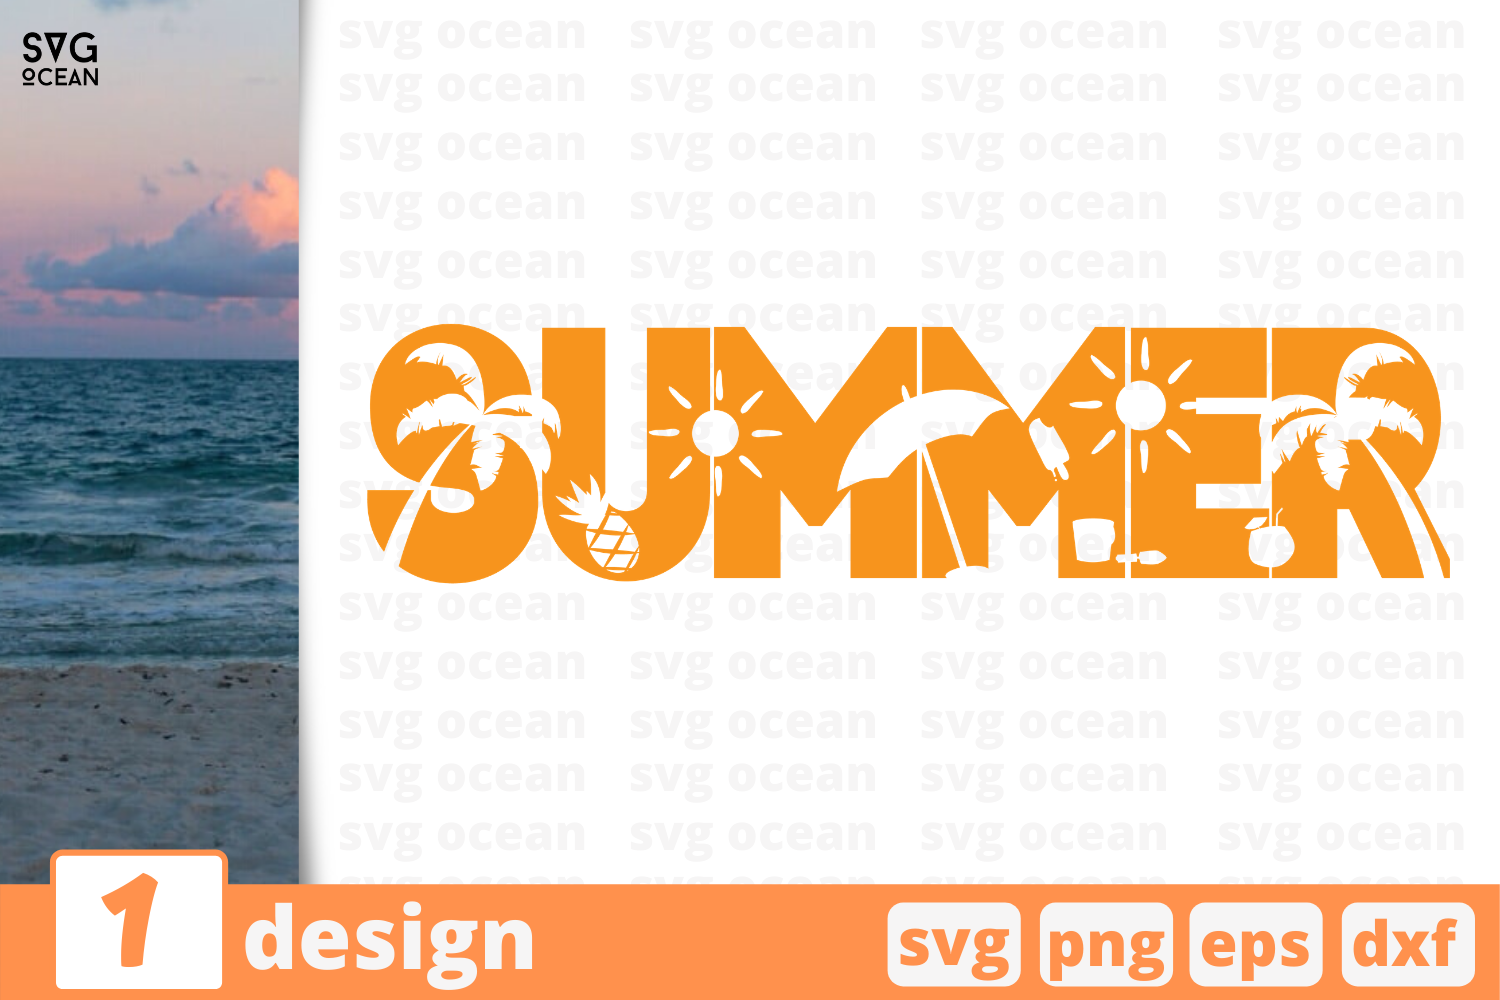 Download Free 1 Summer Bundle Graphic By Svgocean Creative Fabrica for Cricut Explore, Silhouette and other cutting machines.